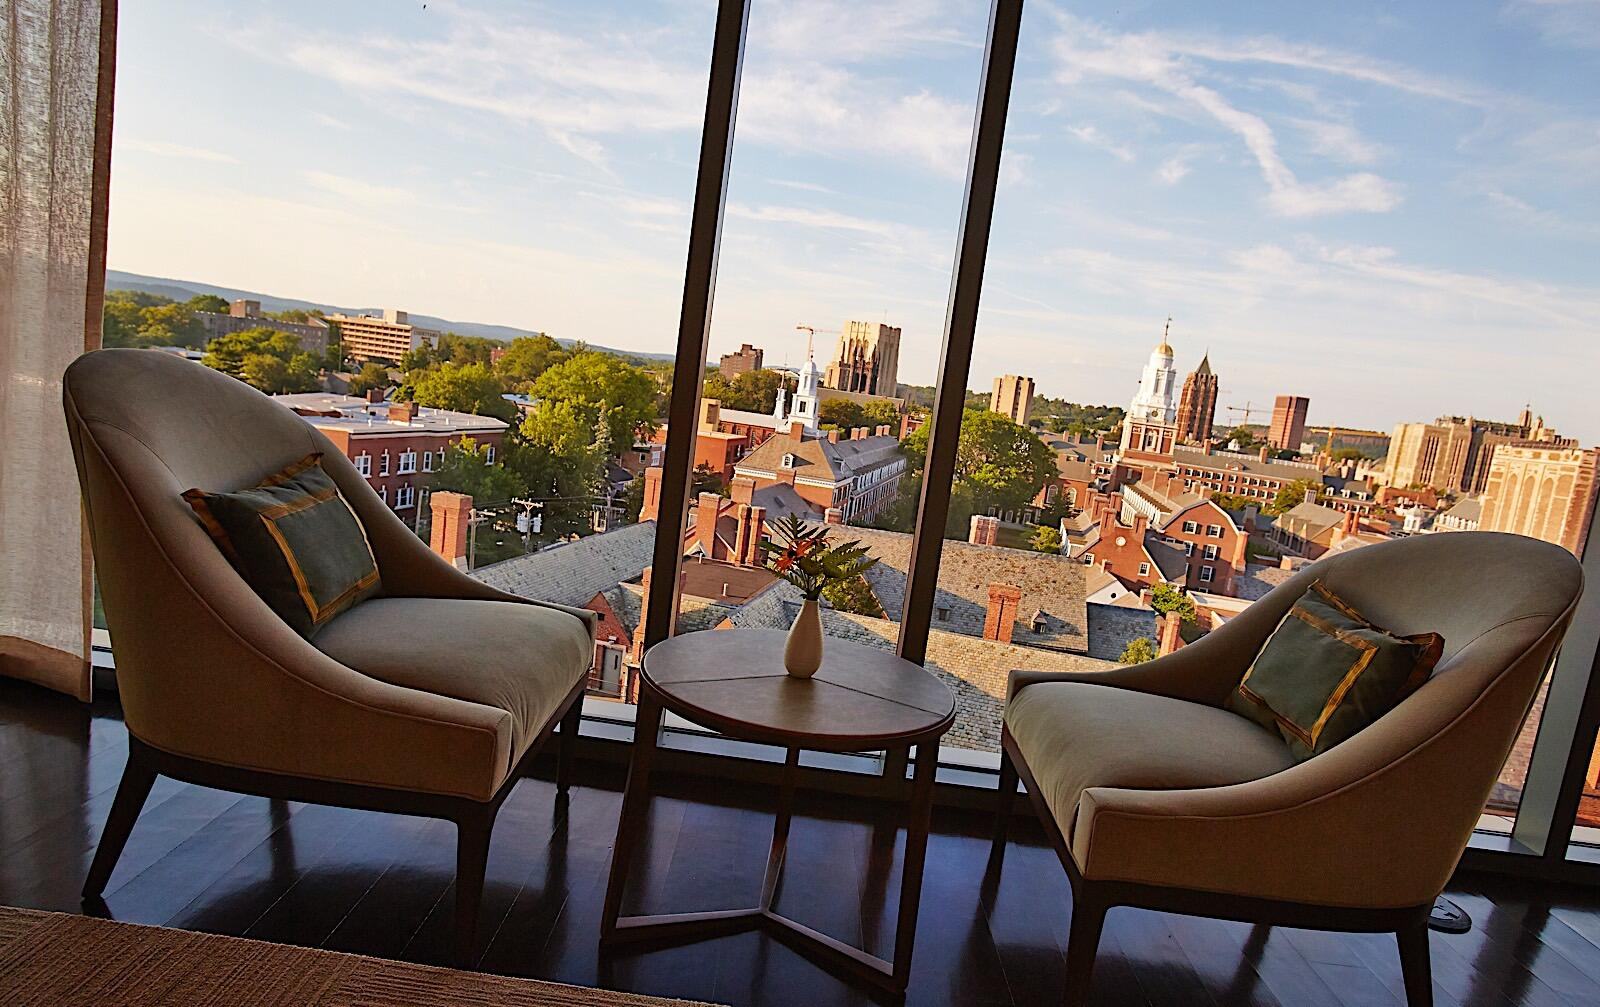 The Study at Yale Penthouse View